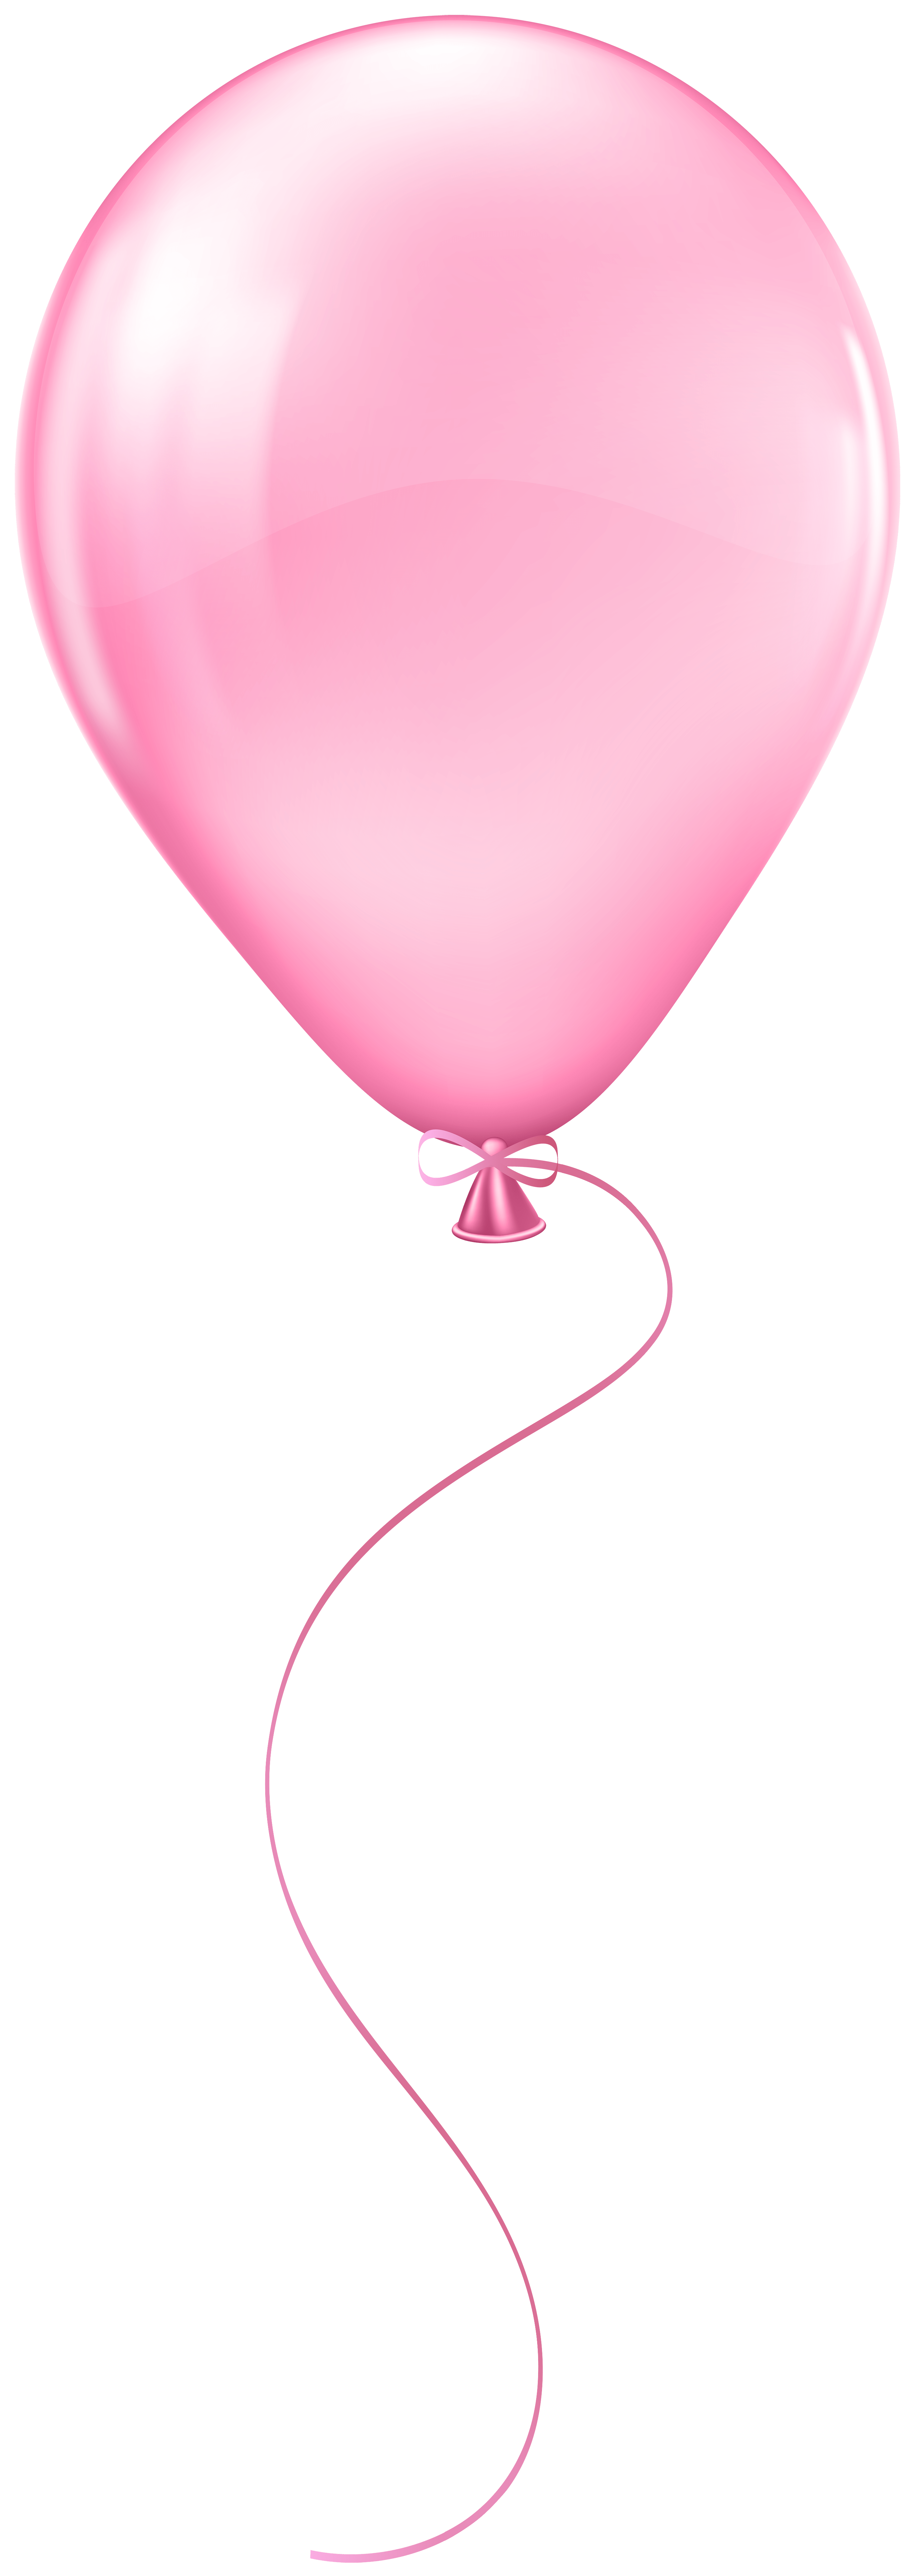 Pink Balloon Png : balloon, Balloon, Clipart, Gallery, Yopriceville, High-Quality, Images, Transparent